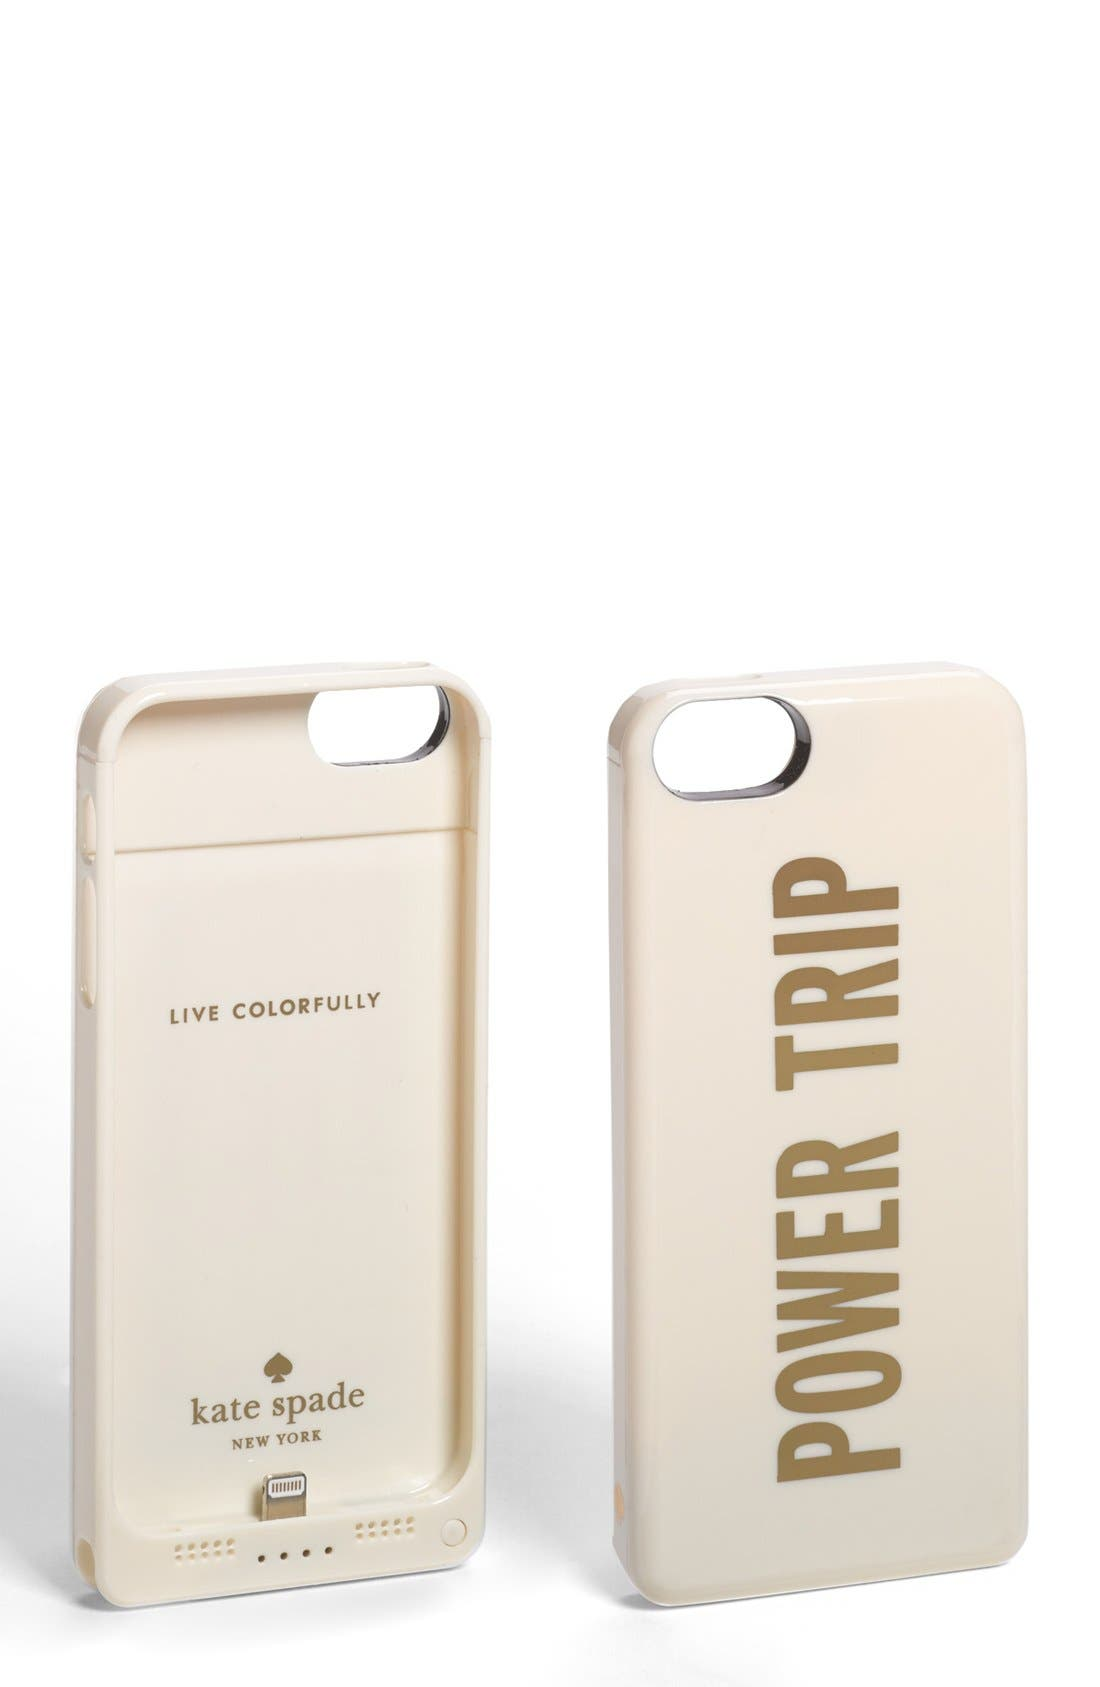 Alternate Image 1 Selected - kate spade new york 'power trip' iPhone 5 case & portable charger